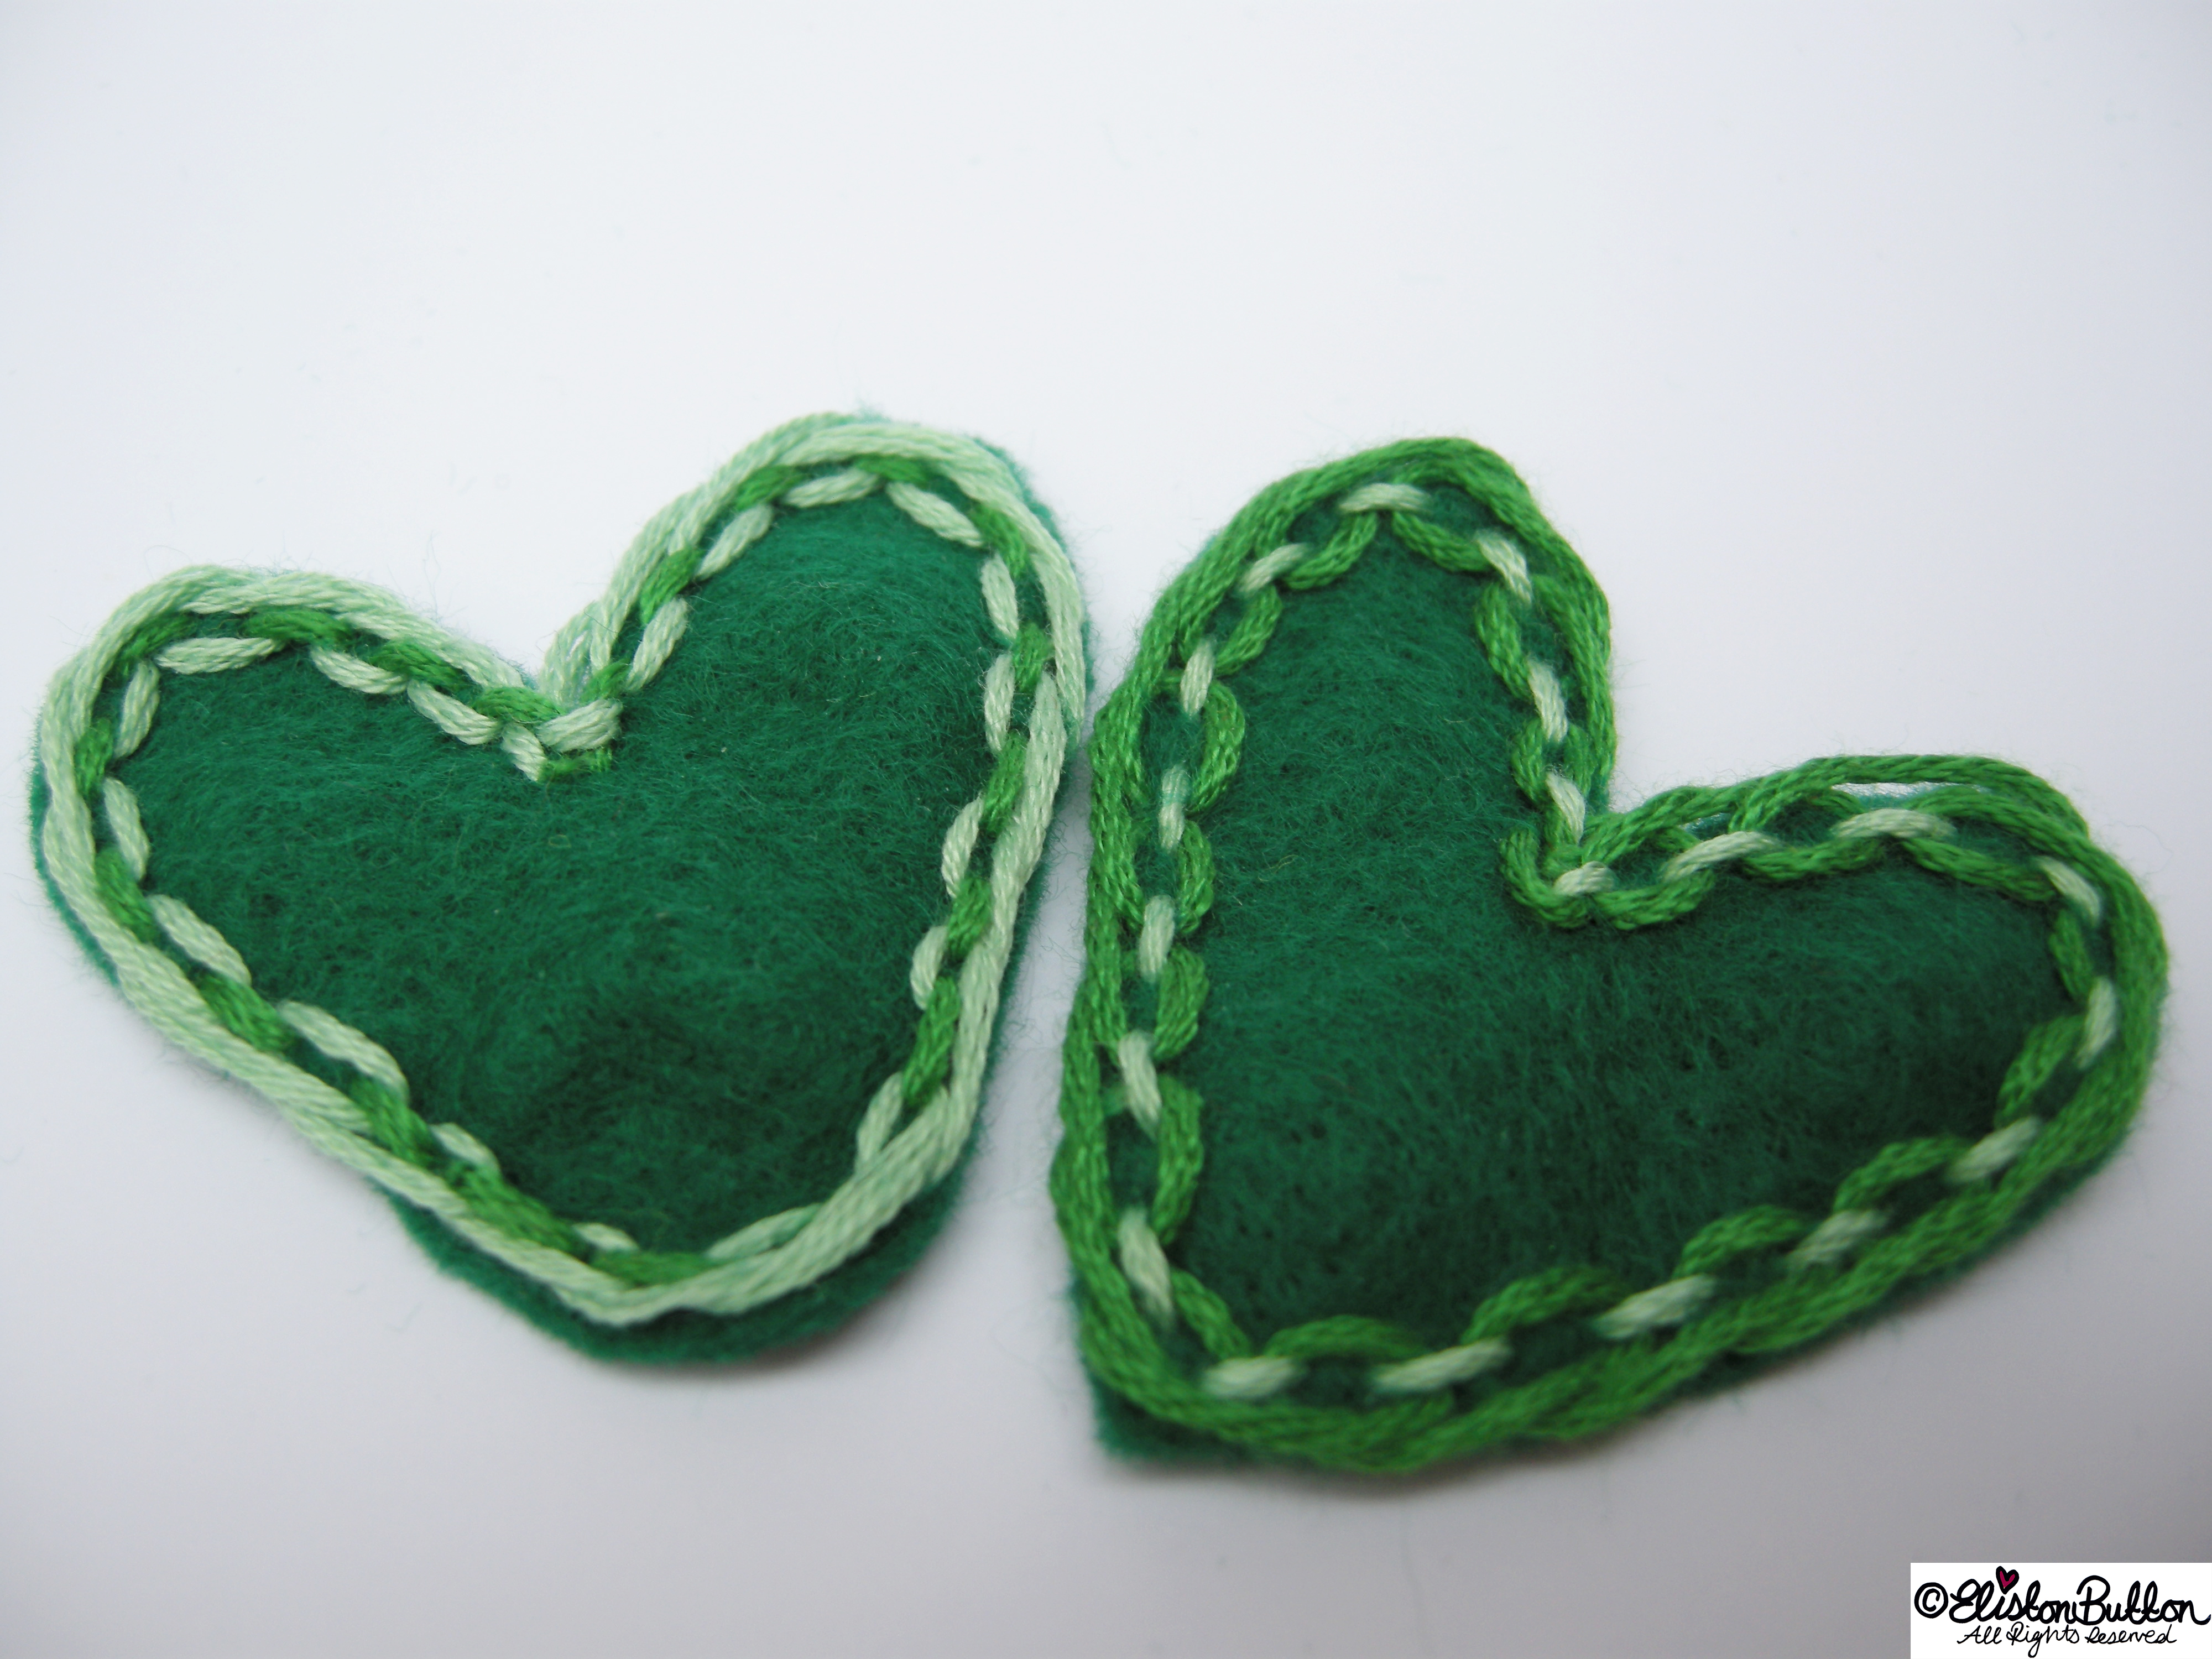 Hand Stitched Green Heart Shapes Together - 27 Before 27 – Lucky at www.elistonbutton.com - Eliston Button - That Crafty Kid – Art, Design, Craft & Adventure.